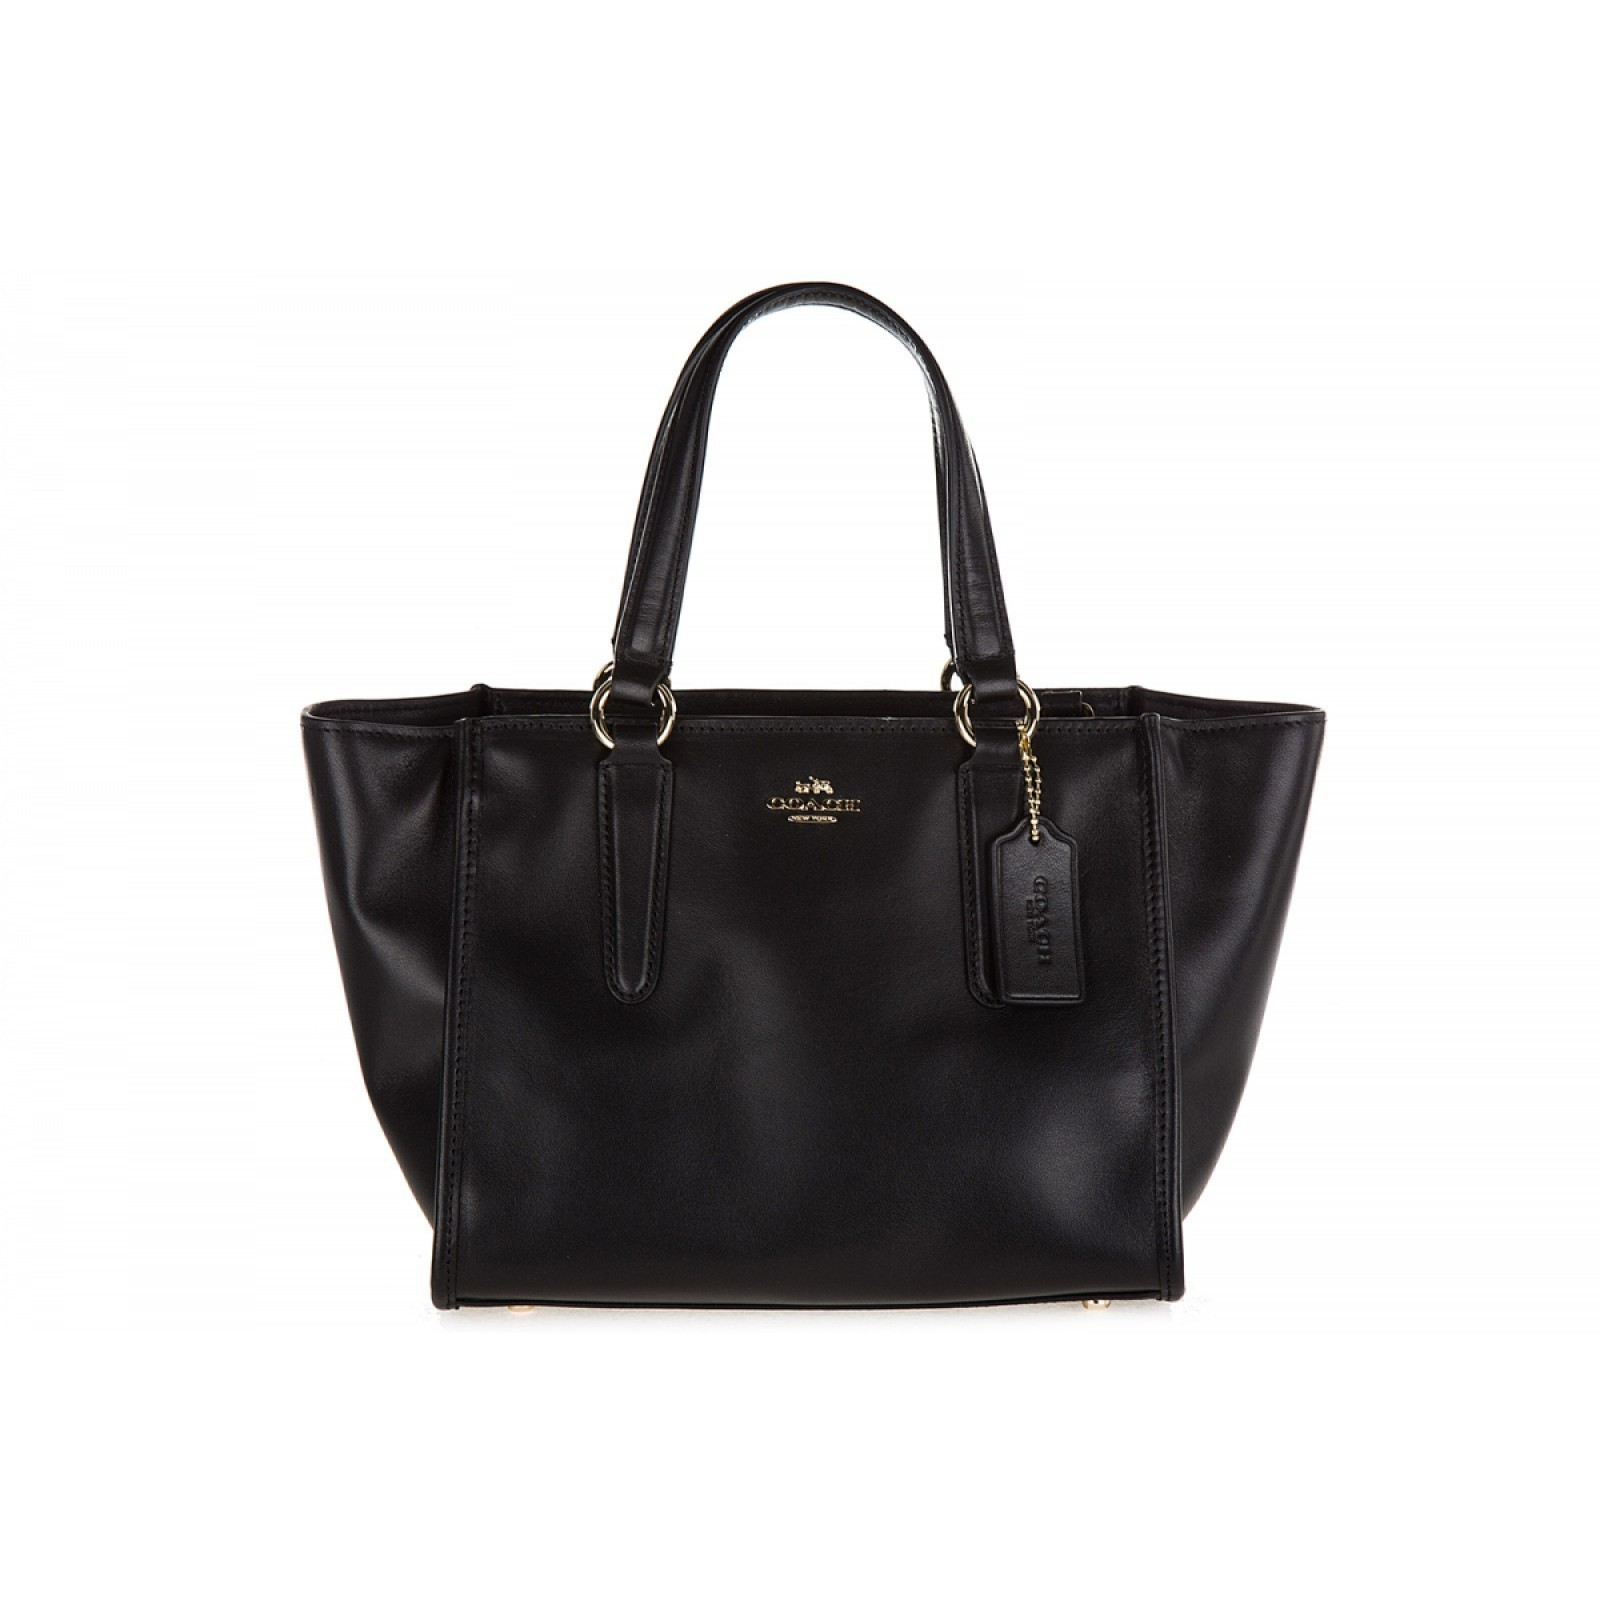 人気☆Borsa donna a mano shopping in pelle smth lth m バッグ